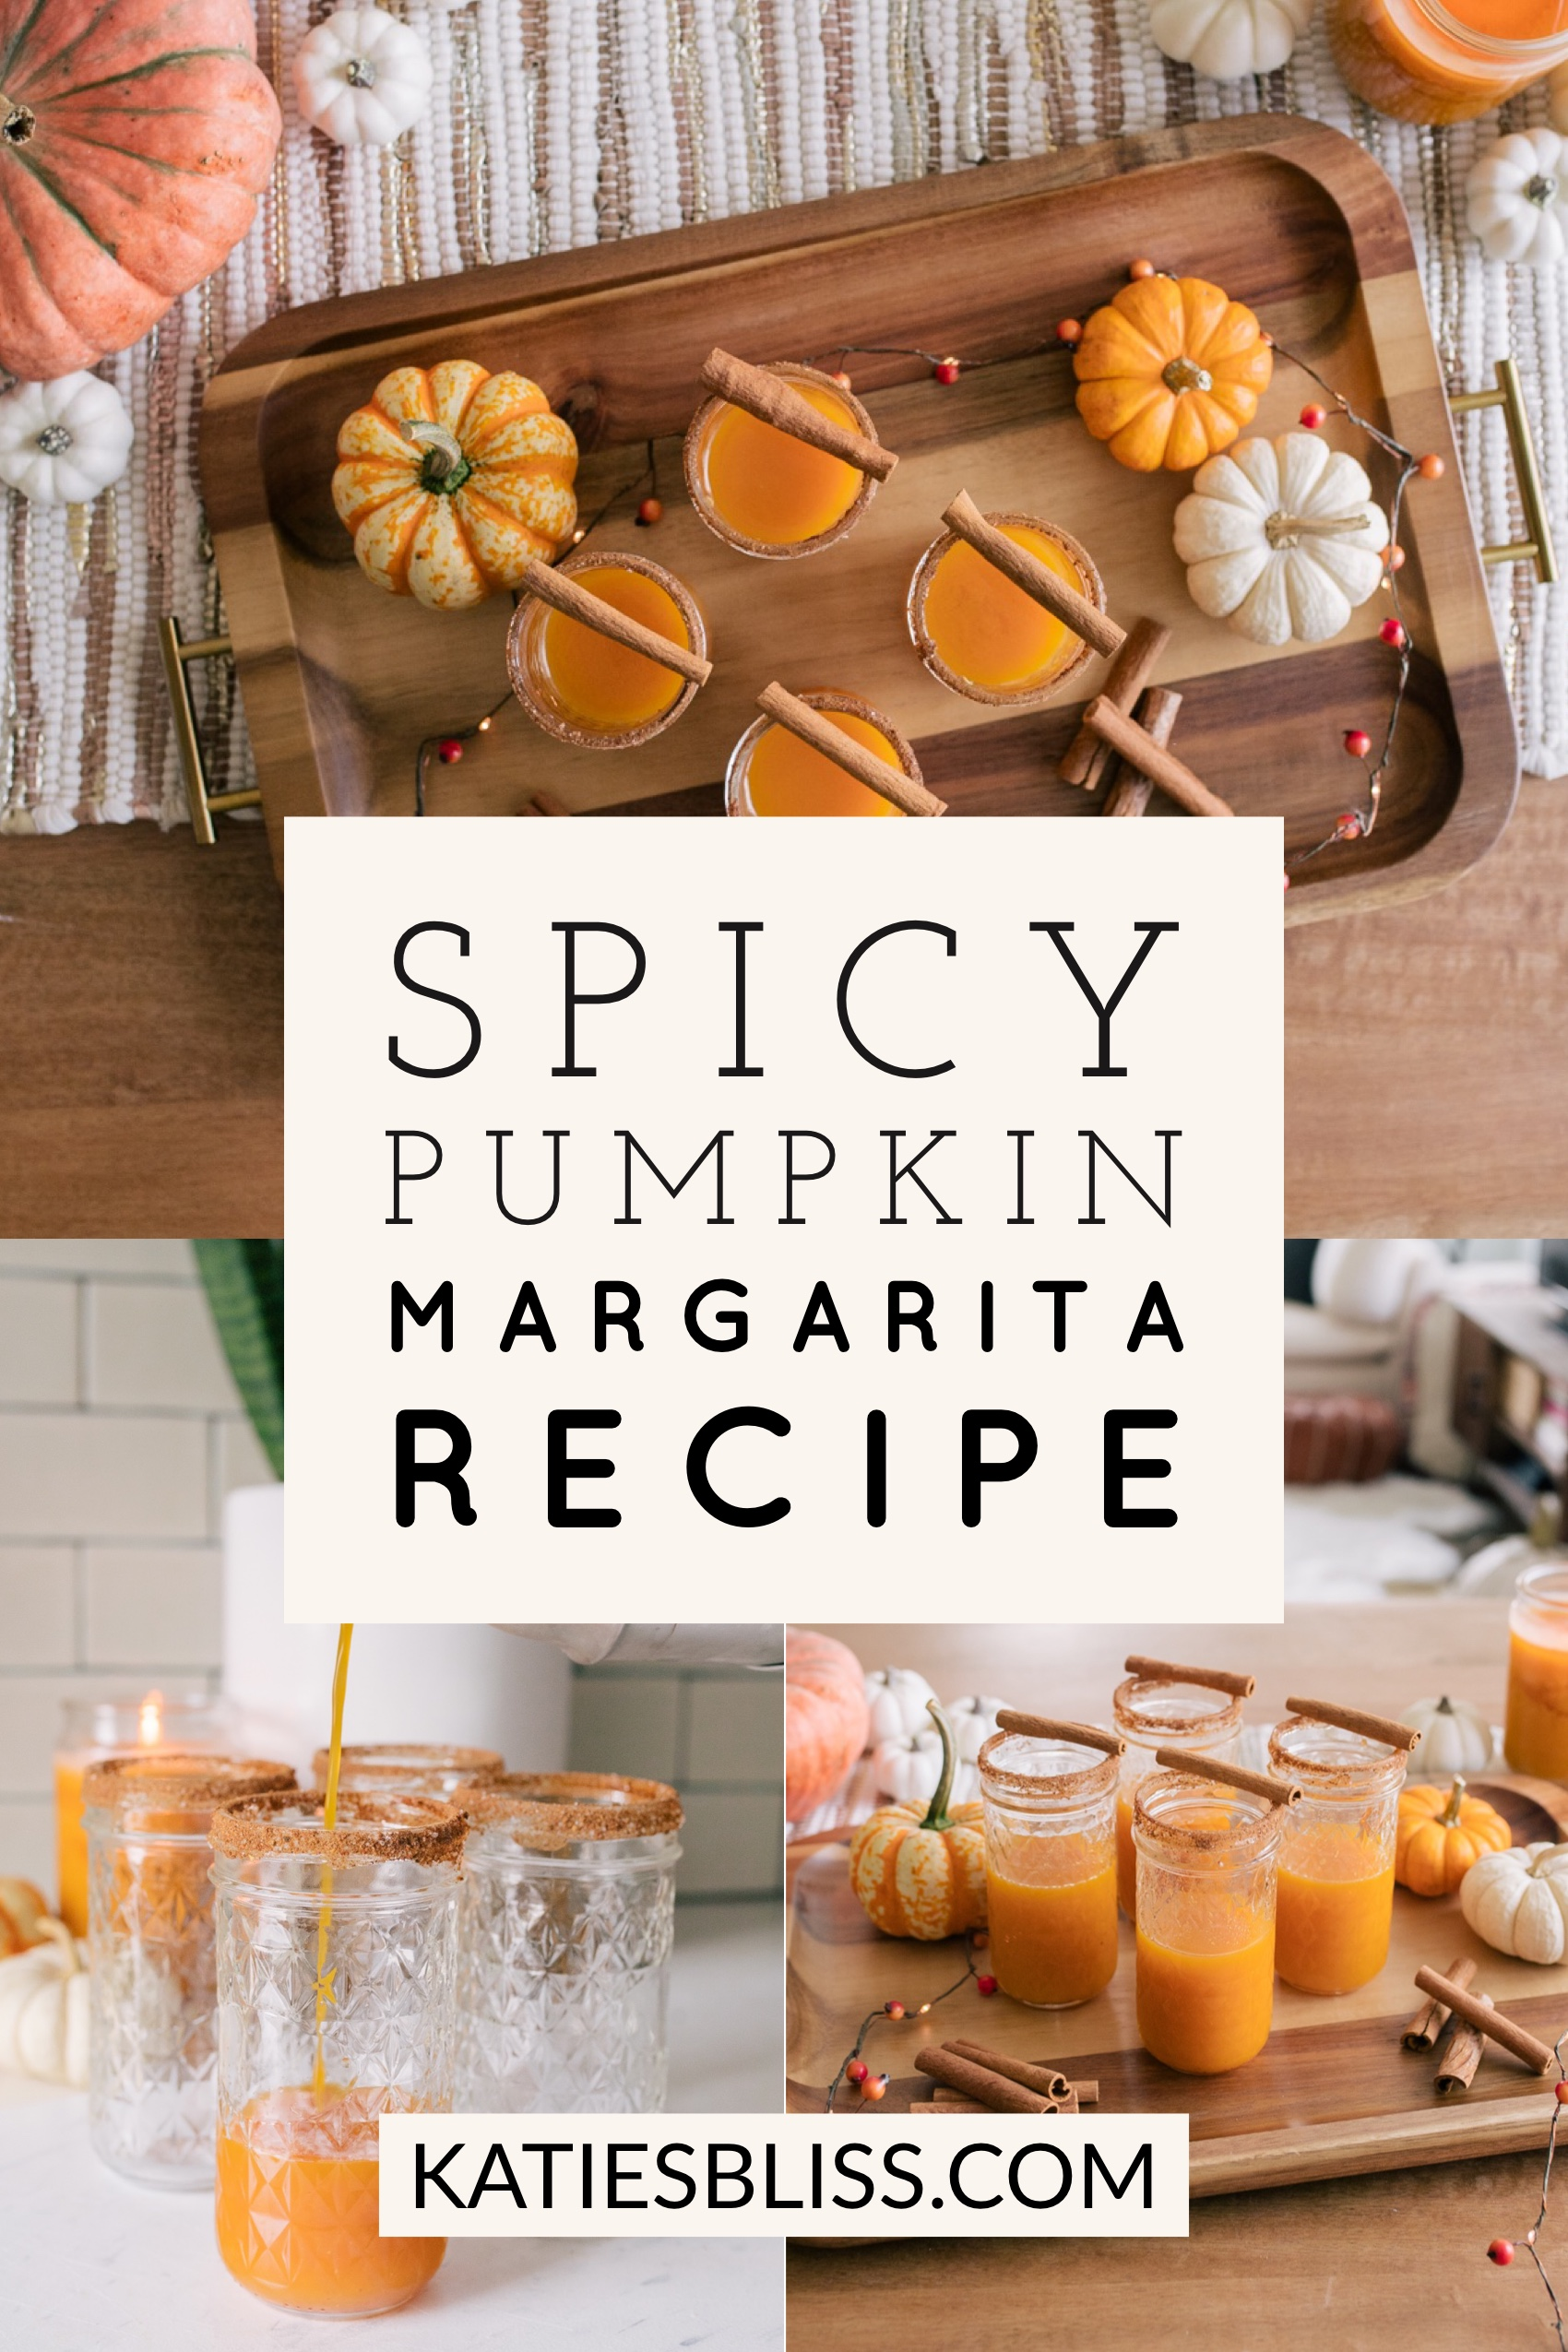 Spicy Pumpkin Margarita Recipe